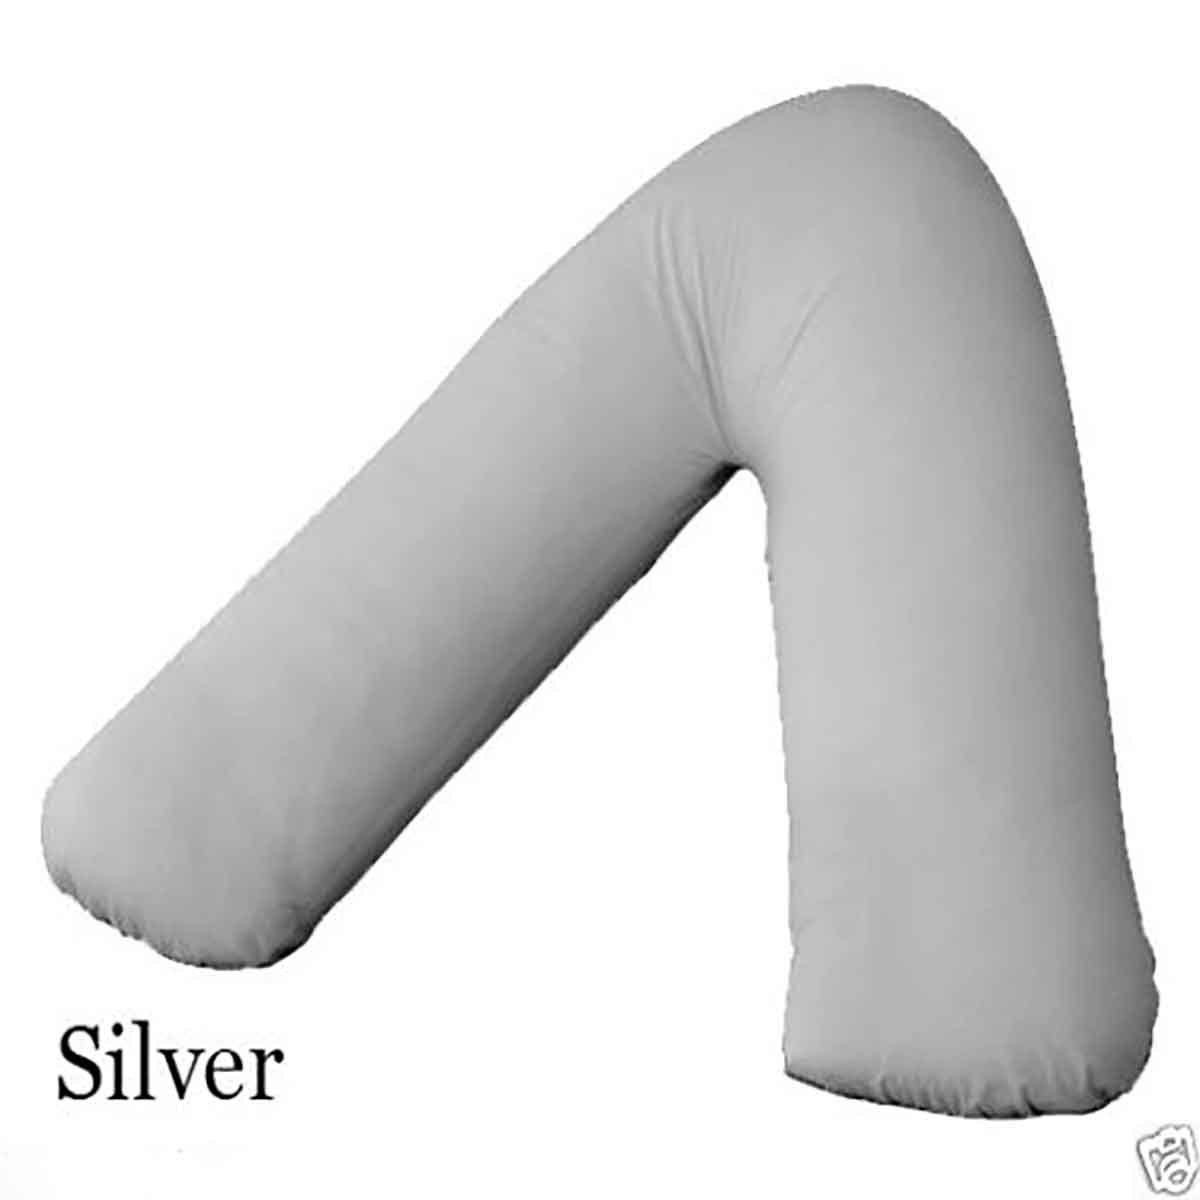 Teal Plain V Shaped Pillow Cases Covers only for Maternity Pregnancy Medical Nursing Orthopedic Pain Relief Back Support Body V-Shaped Pillows Cover